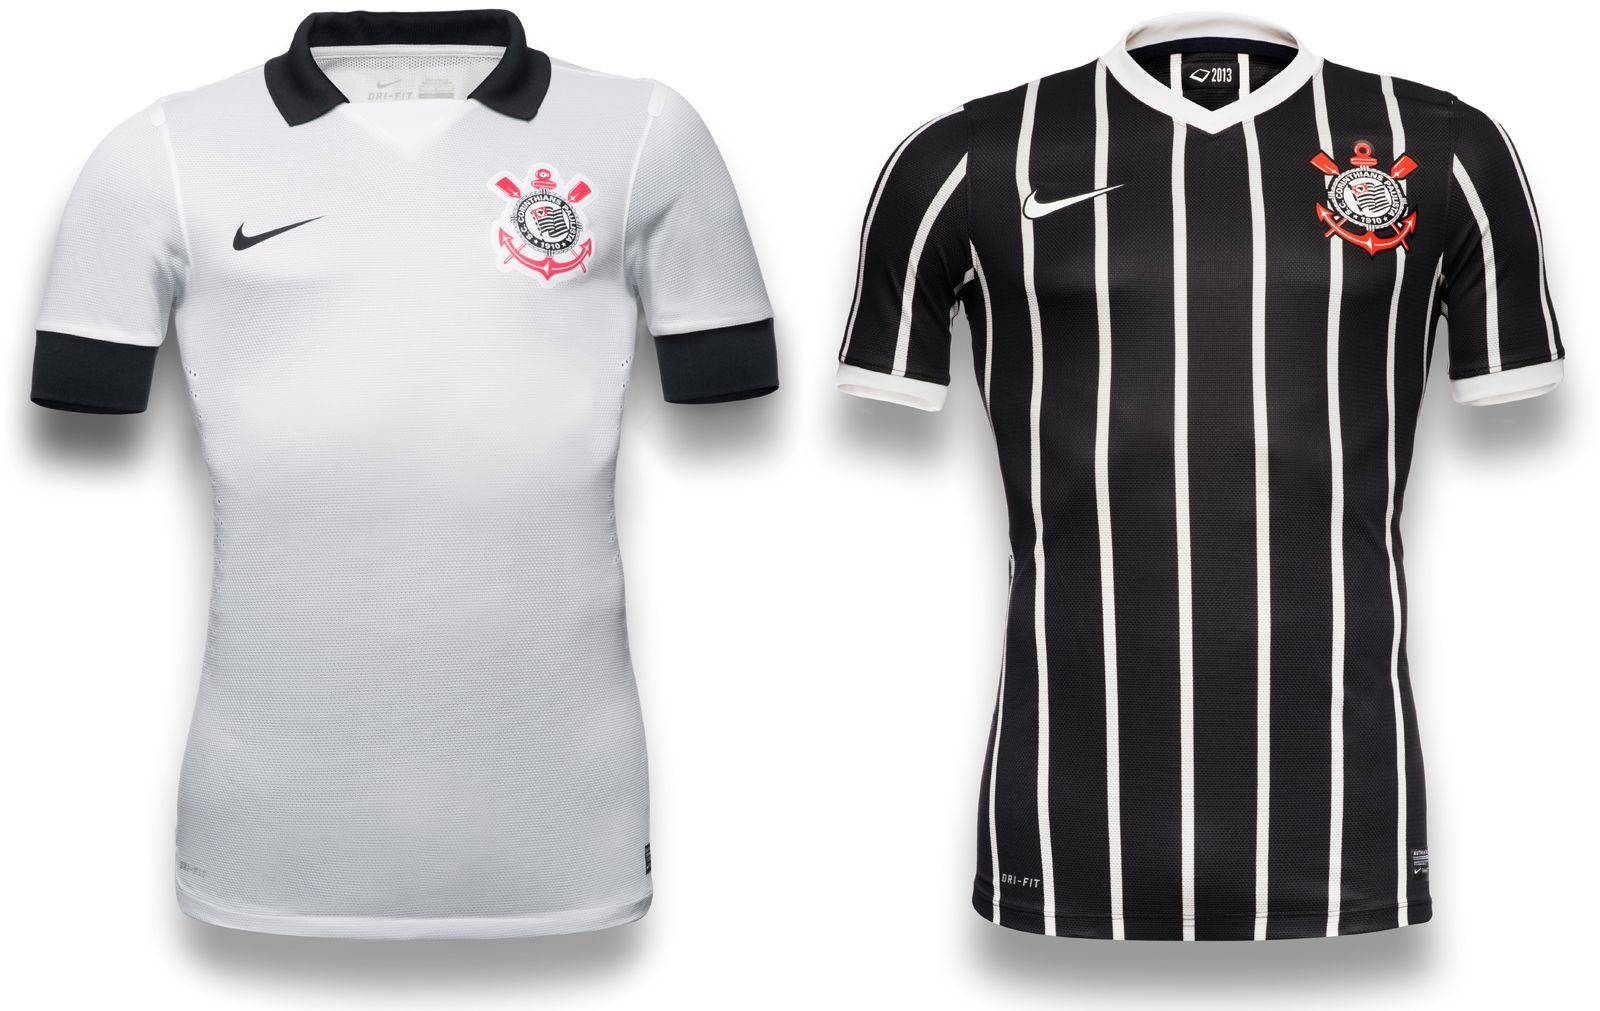 Corinthians 2013 Nike Home Away Kit Jpg 1600 1011